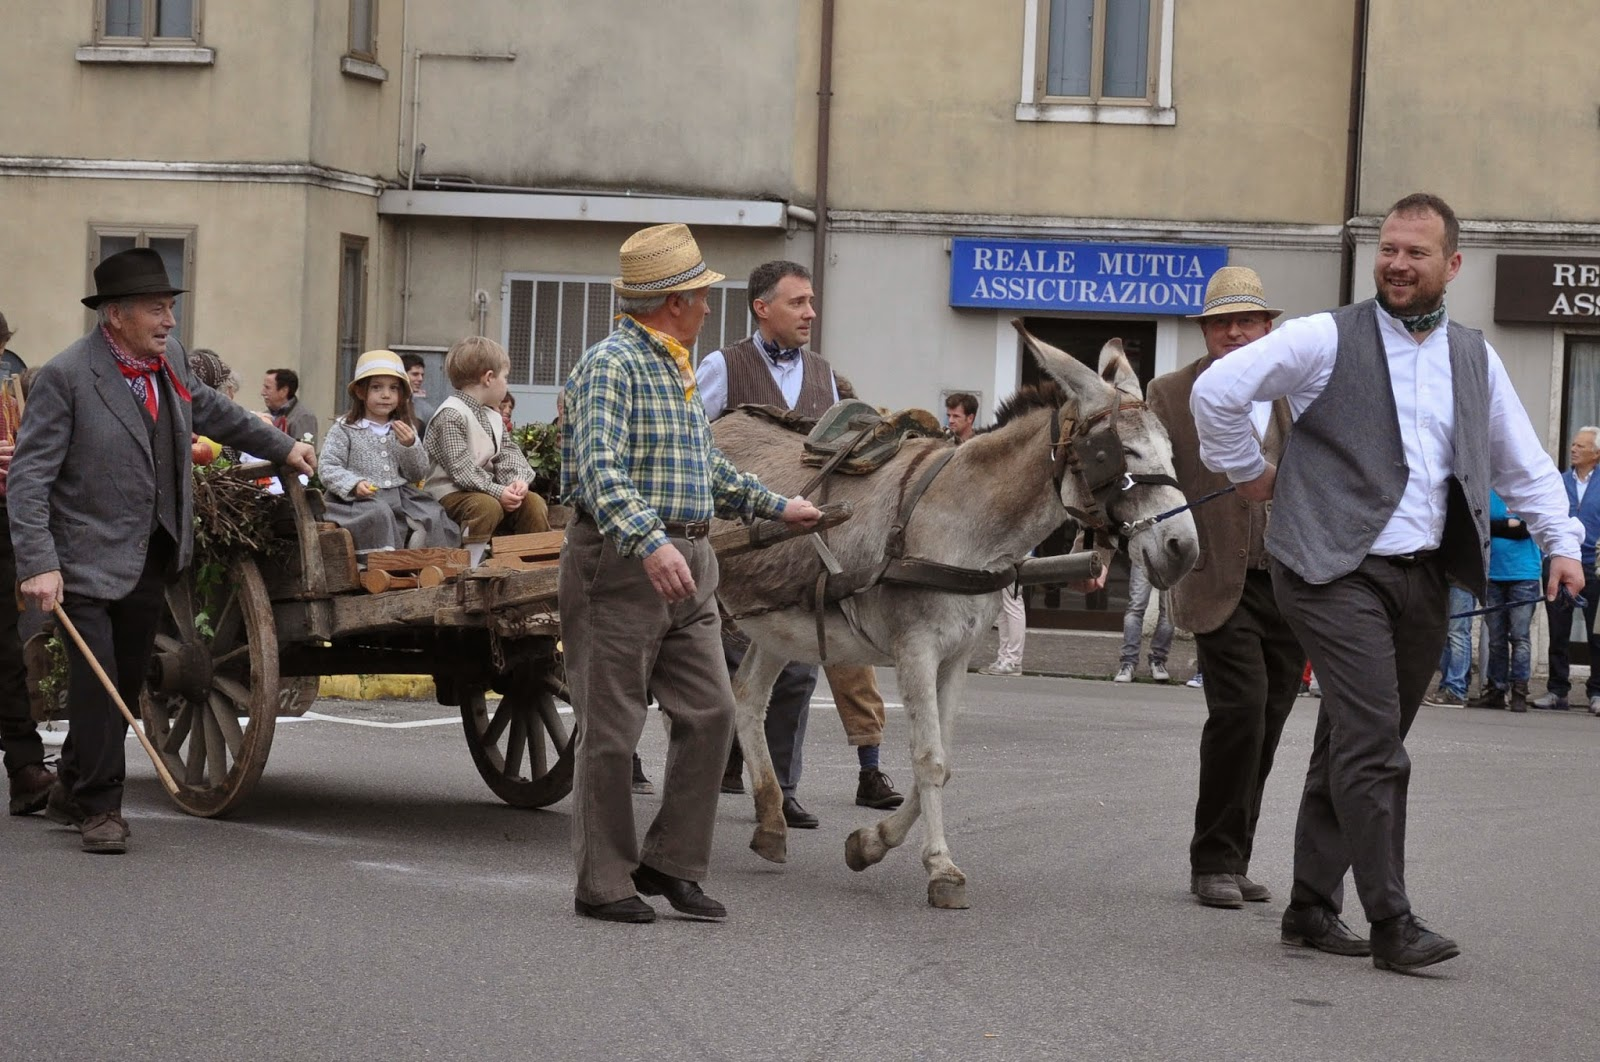 A donkey cart at the Parade, Donkey Race, Romano d'Ezzelino, Veneto, Italy